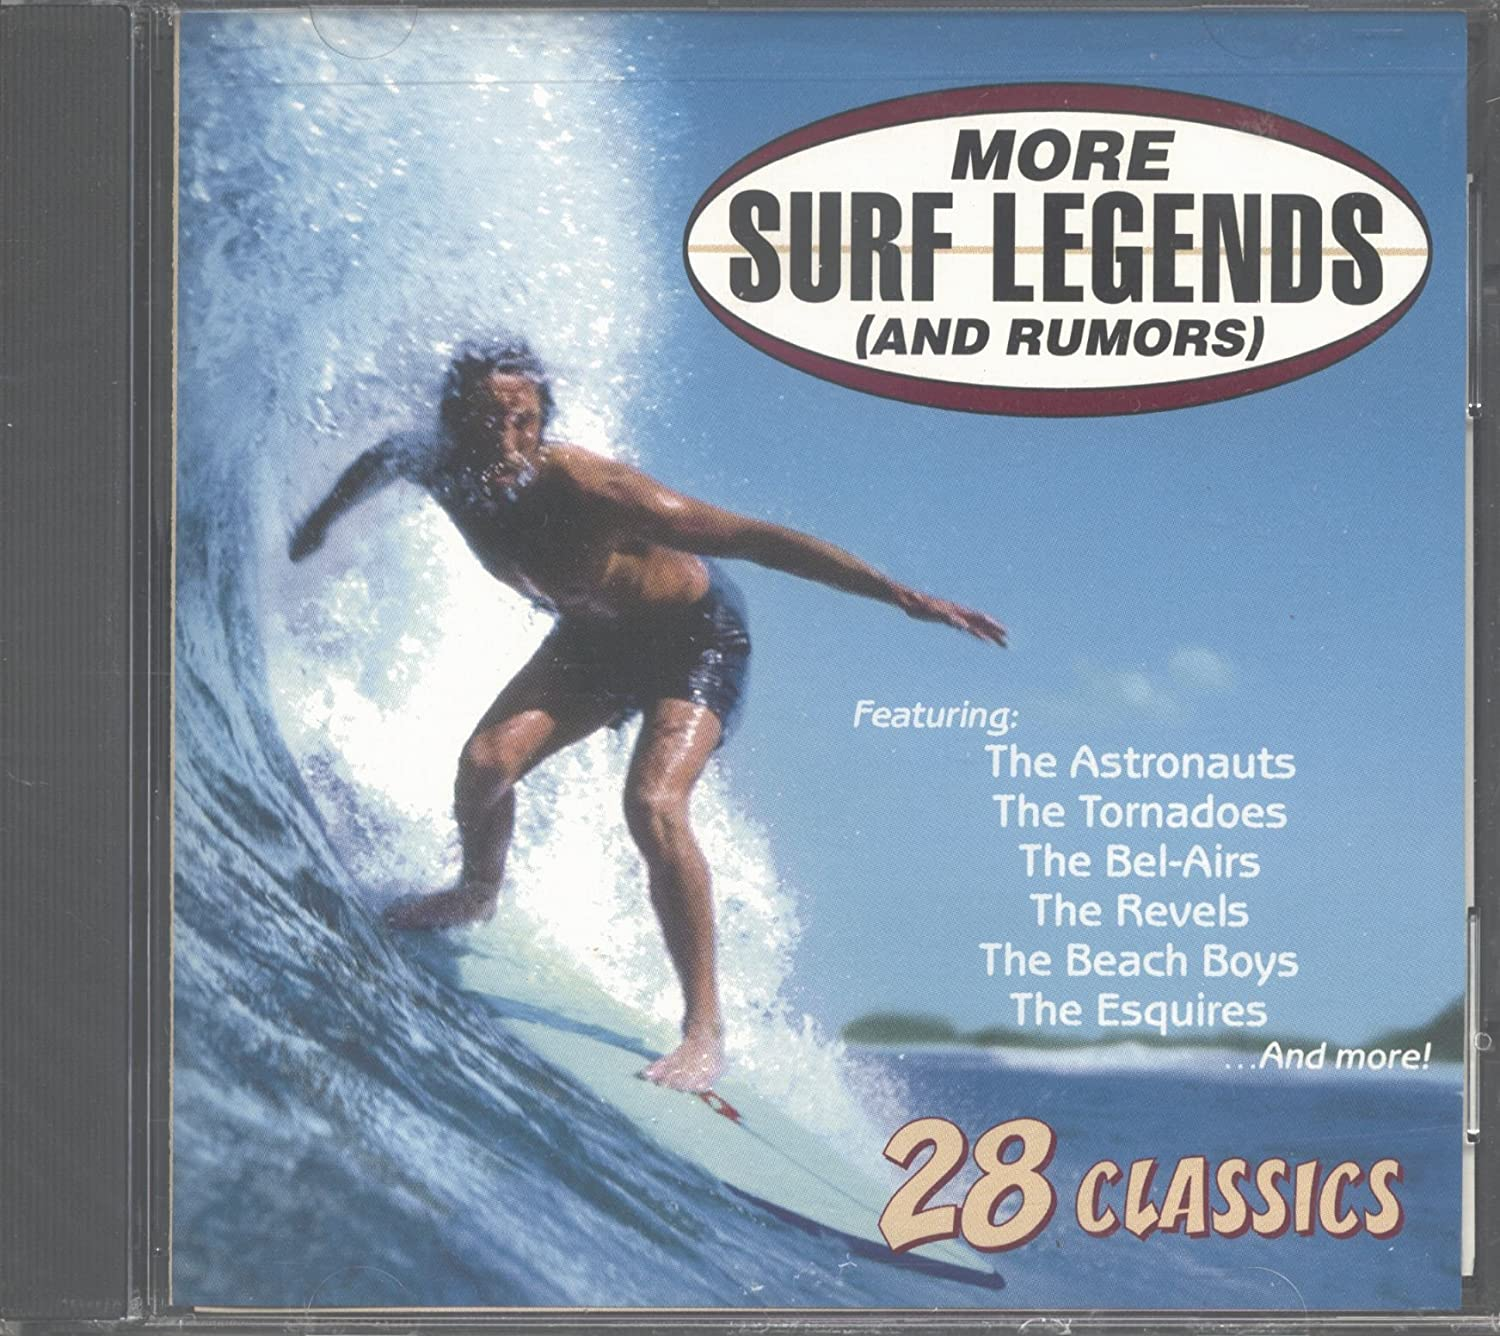 More Surf Legends & Rumors